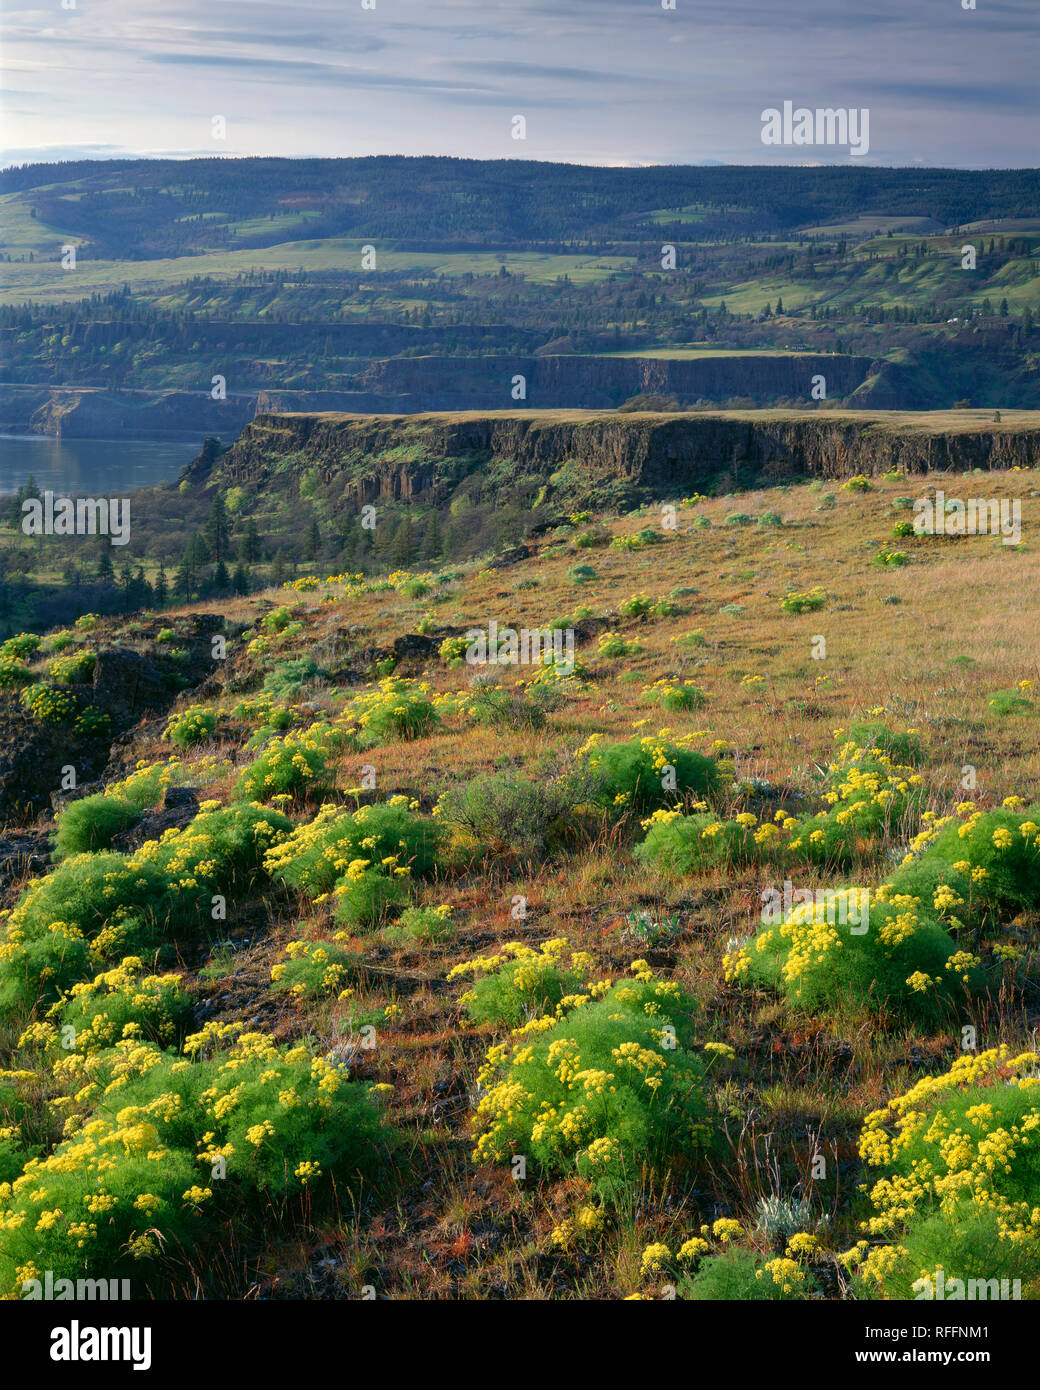 USA, Oregon, Columbia River Gorge National Scenic Area, Spring bloom of desert parsley (Lomatium grayi) with basalt hills in Washington in the distanc - Stock Image